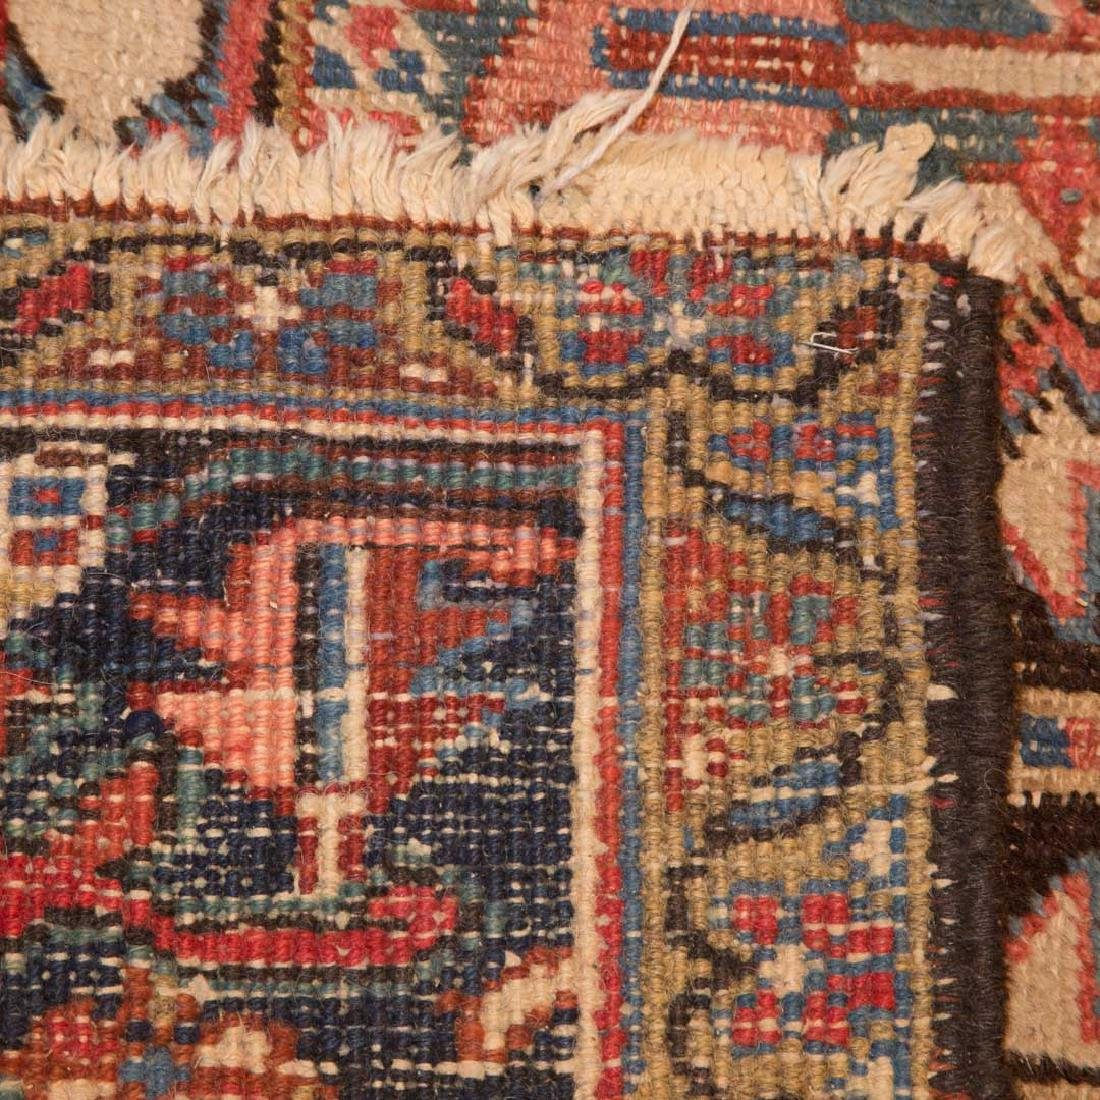 Persian Herez rug, approx. 9.10 x 18.5 - 3